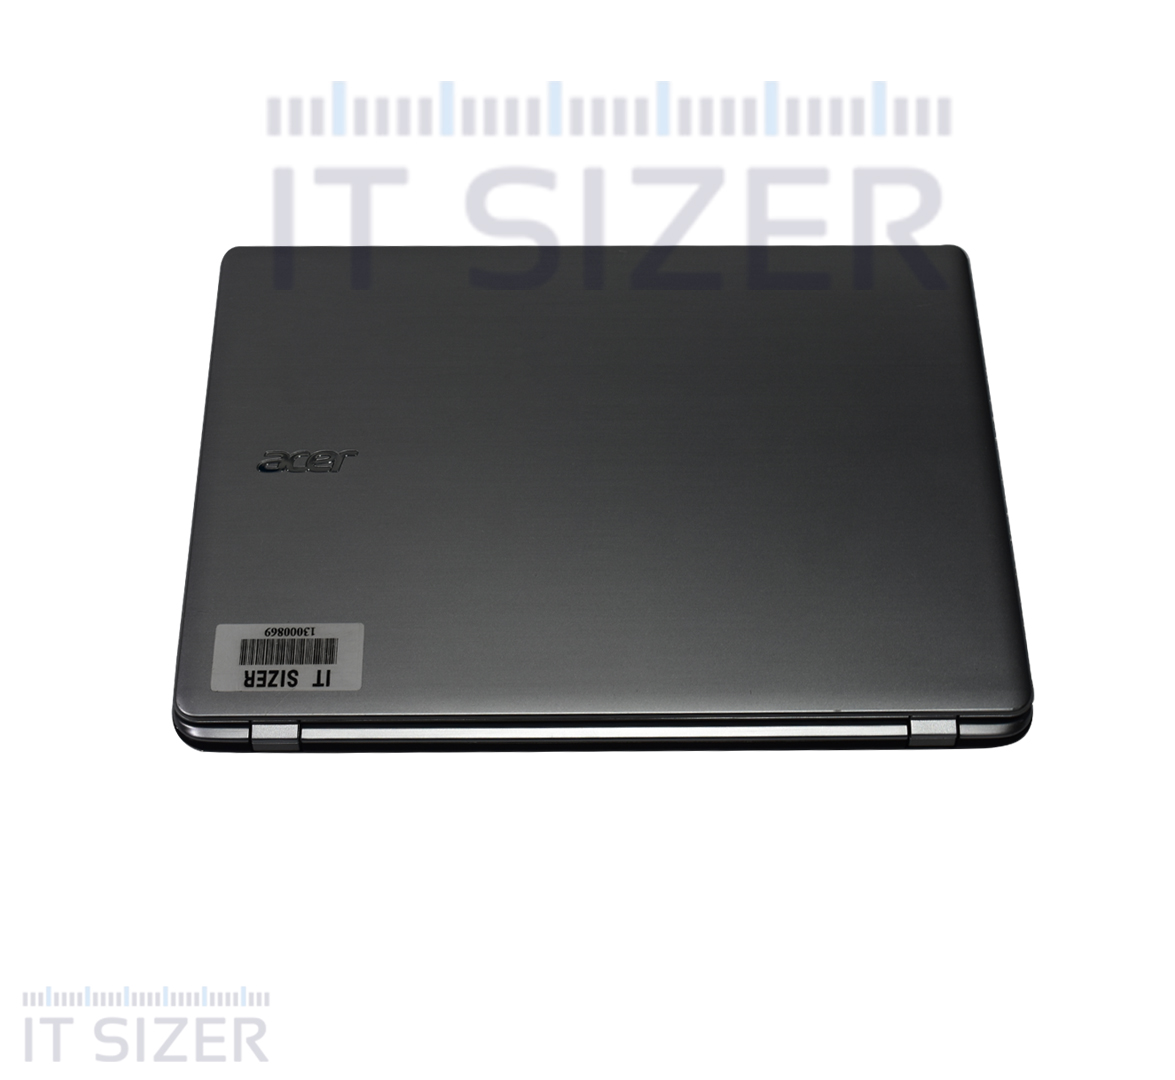 Acer Aspire V5 571 Business Laptop, AMD A6 CPU, 4GB DDR3 SODIMM RAM, 256GB SSD 2.5 , 11 Touch inch Display, Windows 10 Pro (Renewed)